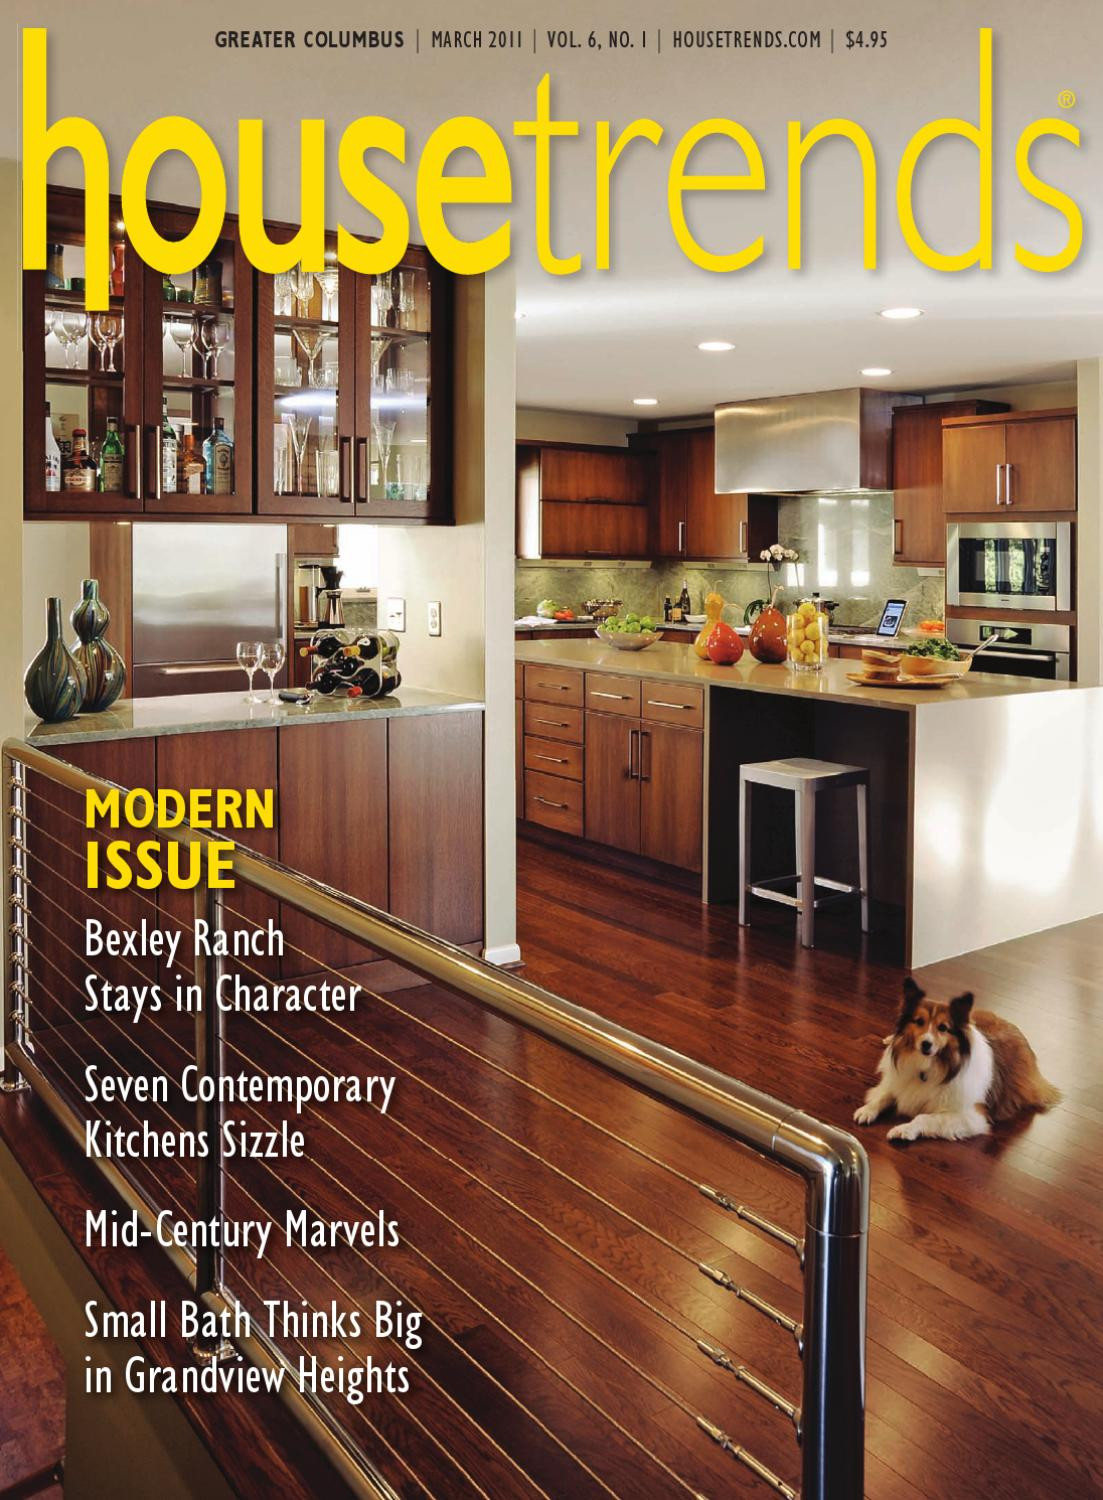 hardwood floor refinishing hamilton of columbus housetrends by housetrends issuu for page 1